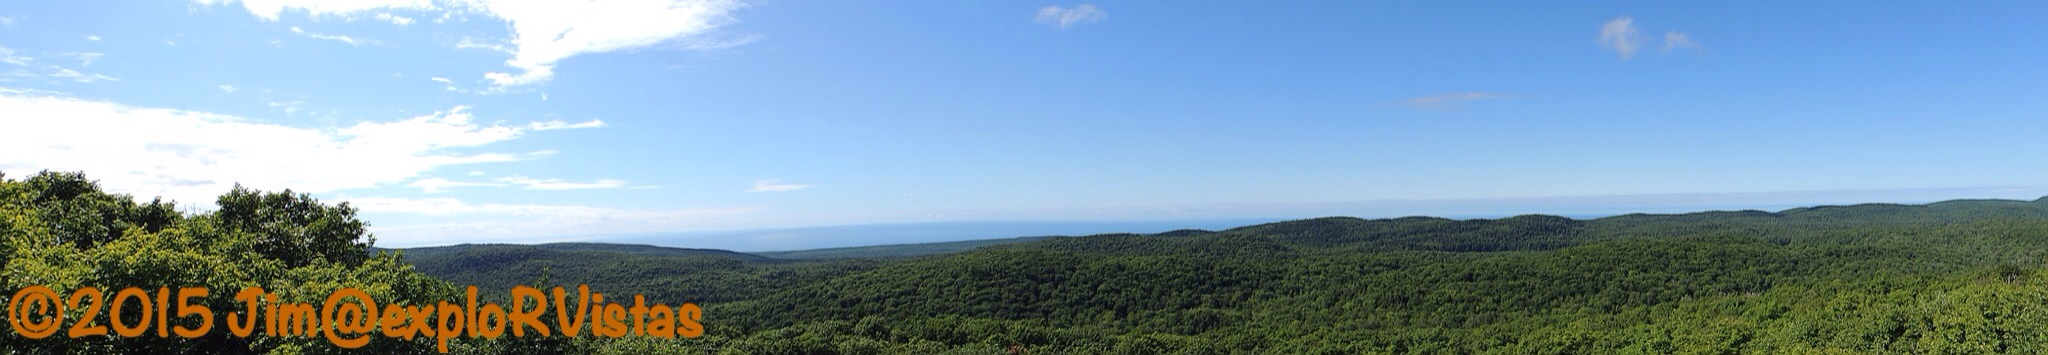 Mt curwood explorvistas what a view if you pull in the horizon on the above panorama you can see wisconsins apostle islands in the distance publicscrutiny Image collections